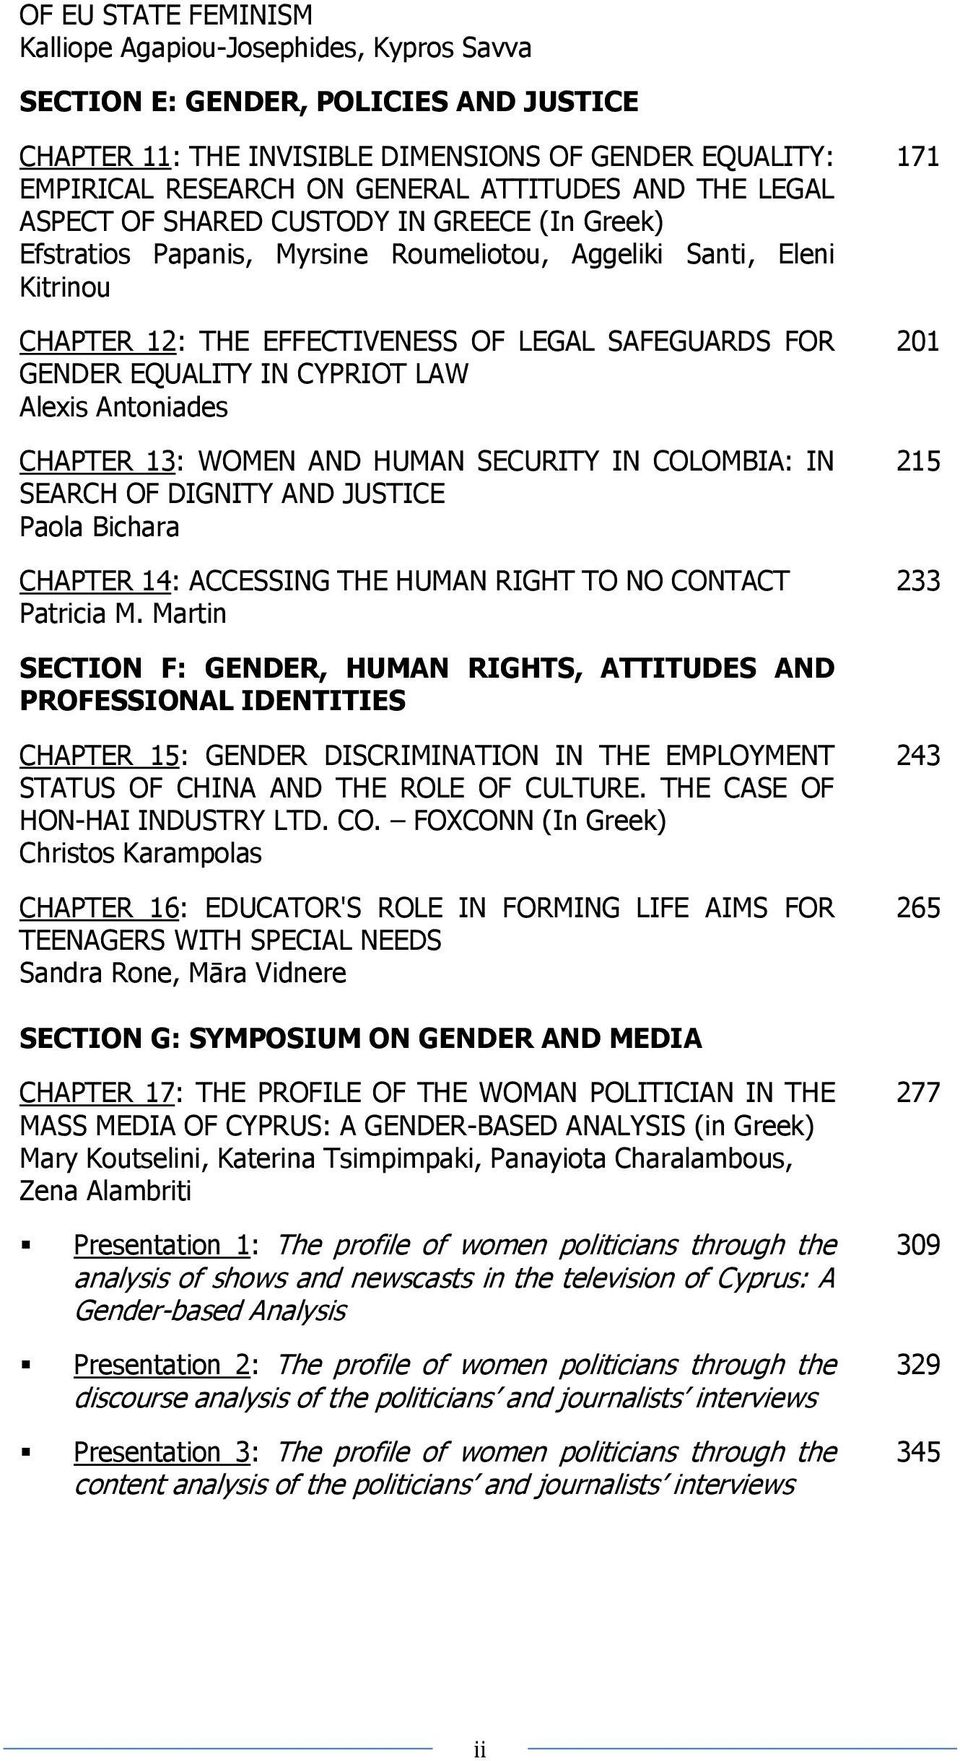 EQUALITY IN CYPRIOT LAW Alexis Antoniades CHAPTER 13: WOMEN AND HUMAN SECURITY IN COLOMBIA: IN SEARCH OF DIGNITY AND JUSTICE Paola Bichara CHAPTER 14: ACCESSING THE HUMAN RIGHT TO NO CONTACT Patricia